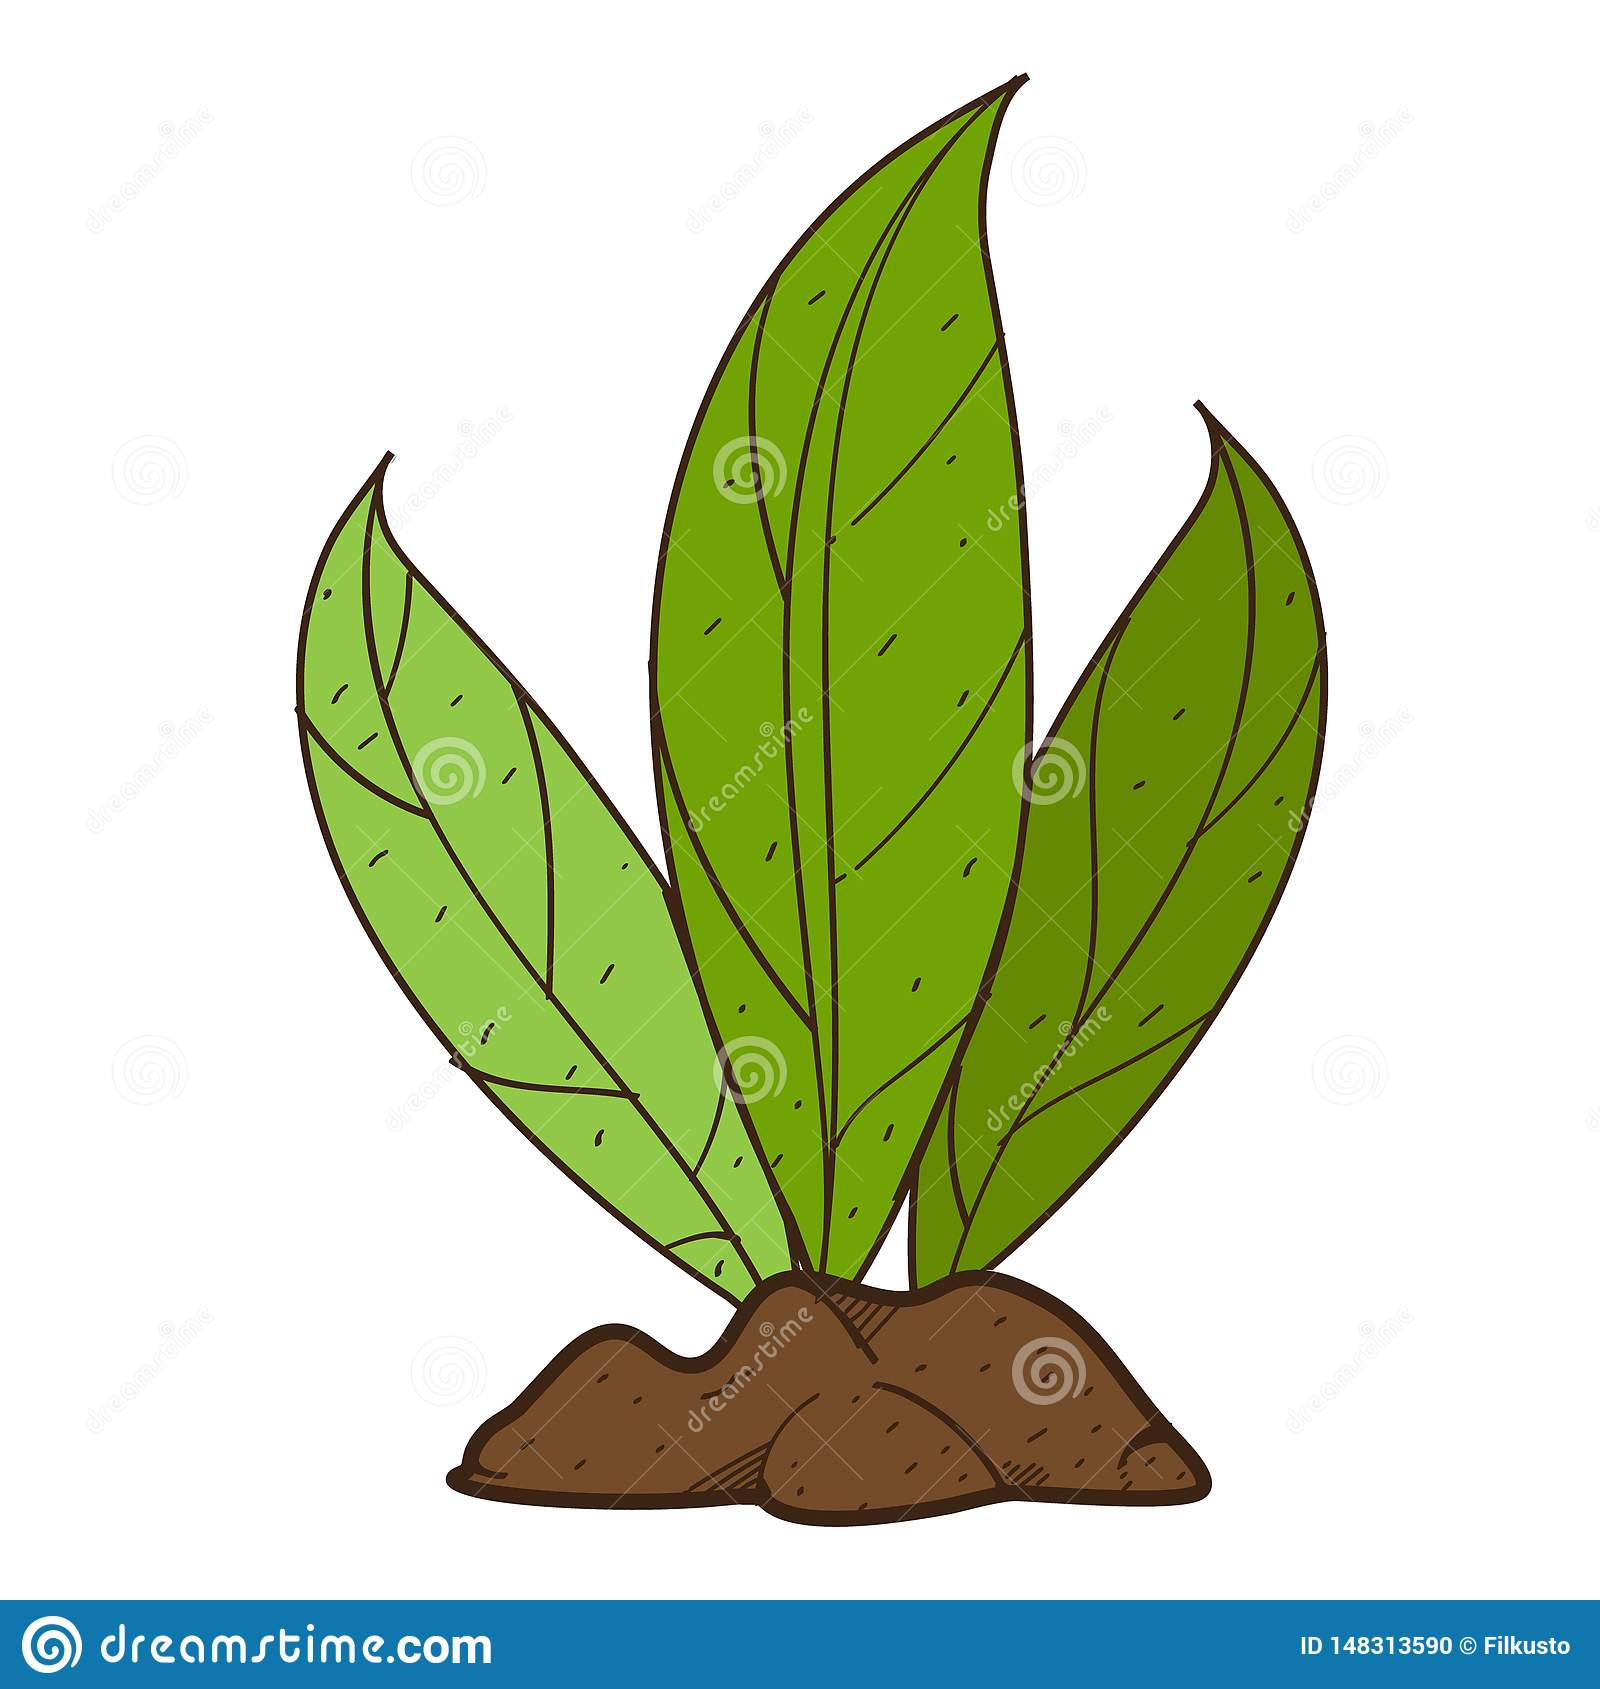 Green leaves, plant on the ground shrubs. Color illustration on farming, growing of plants